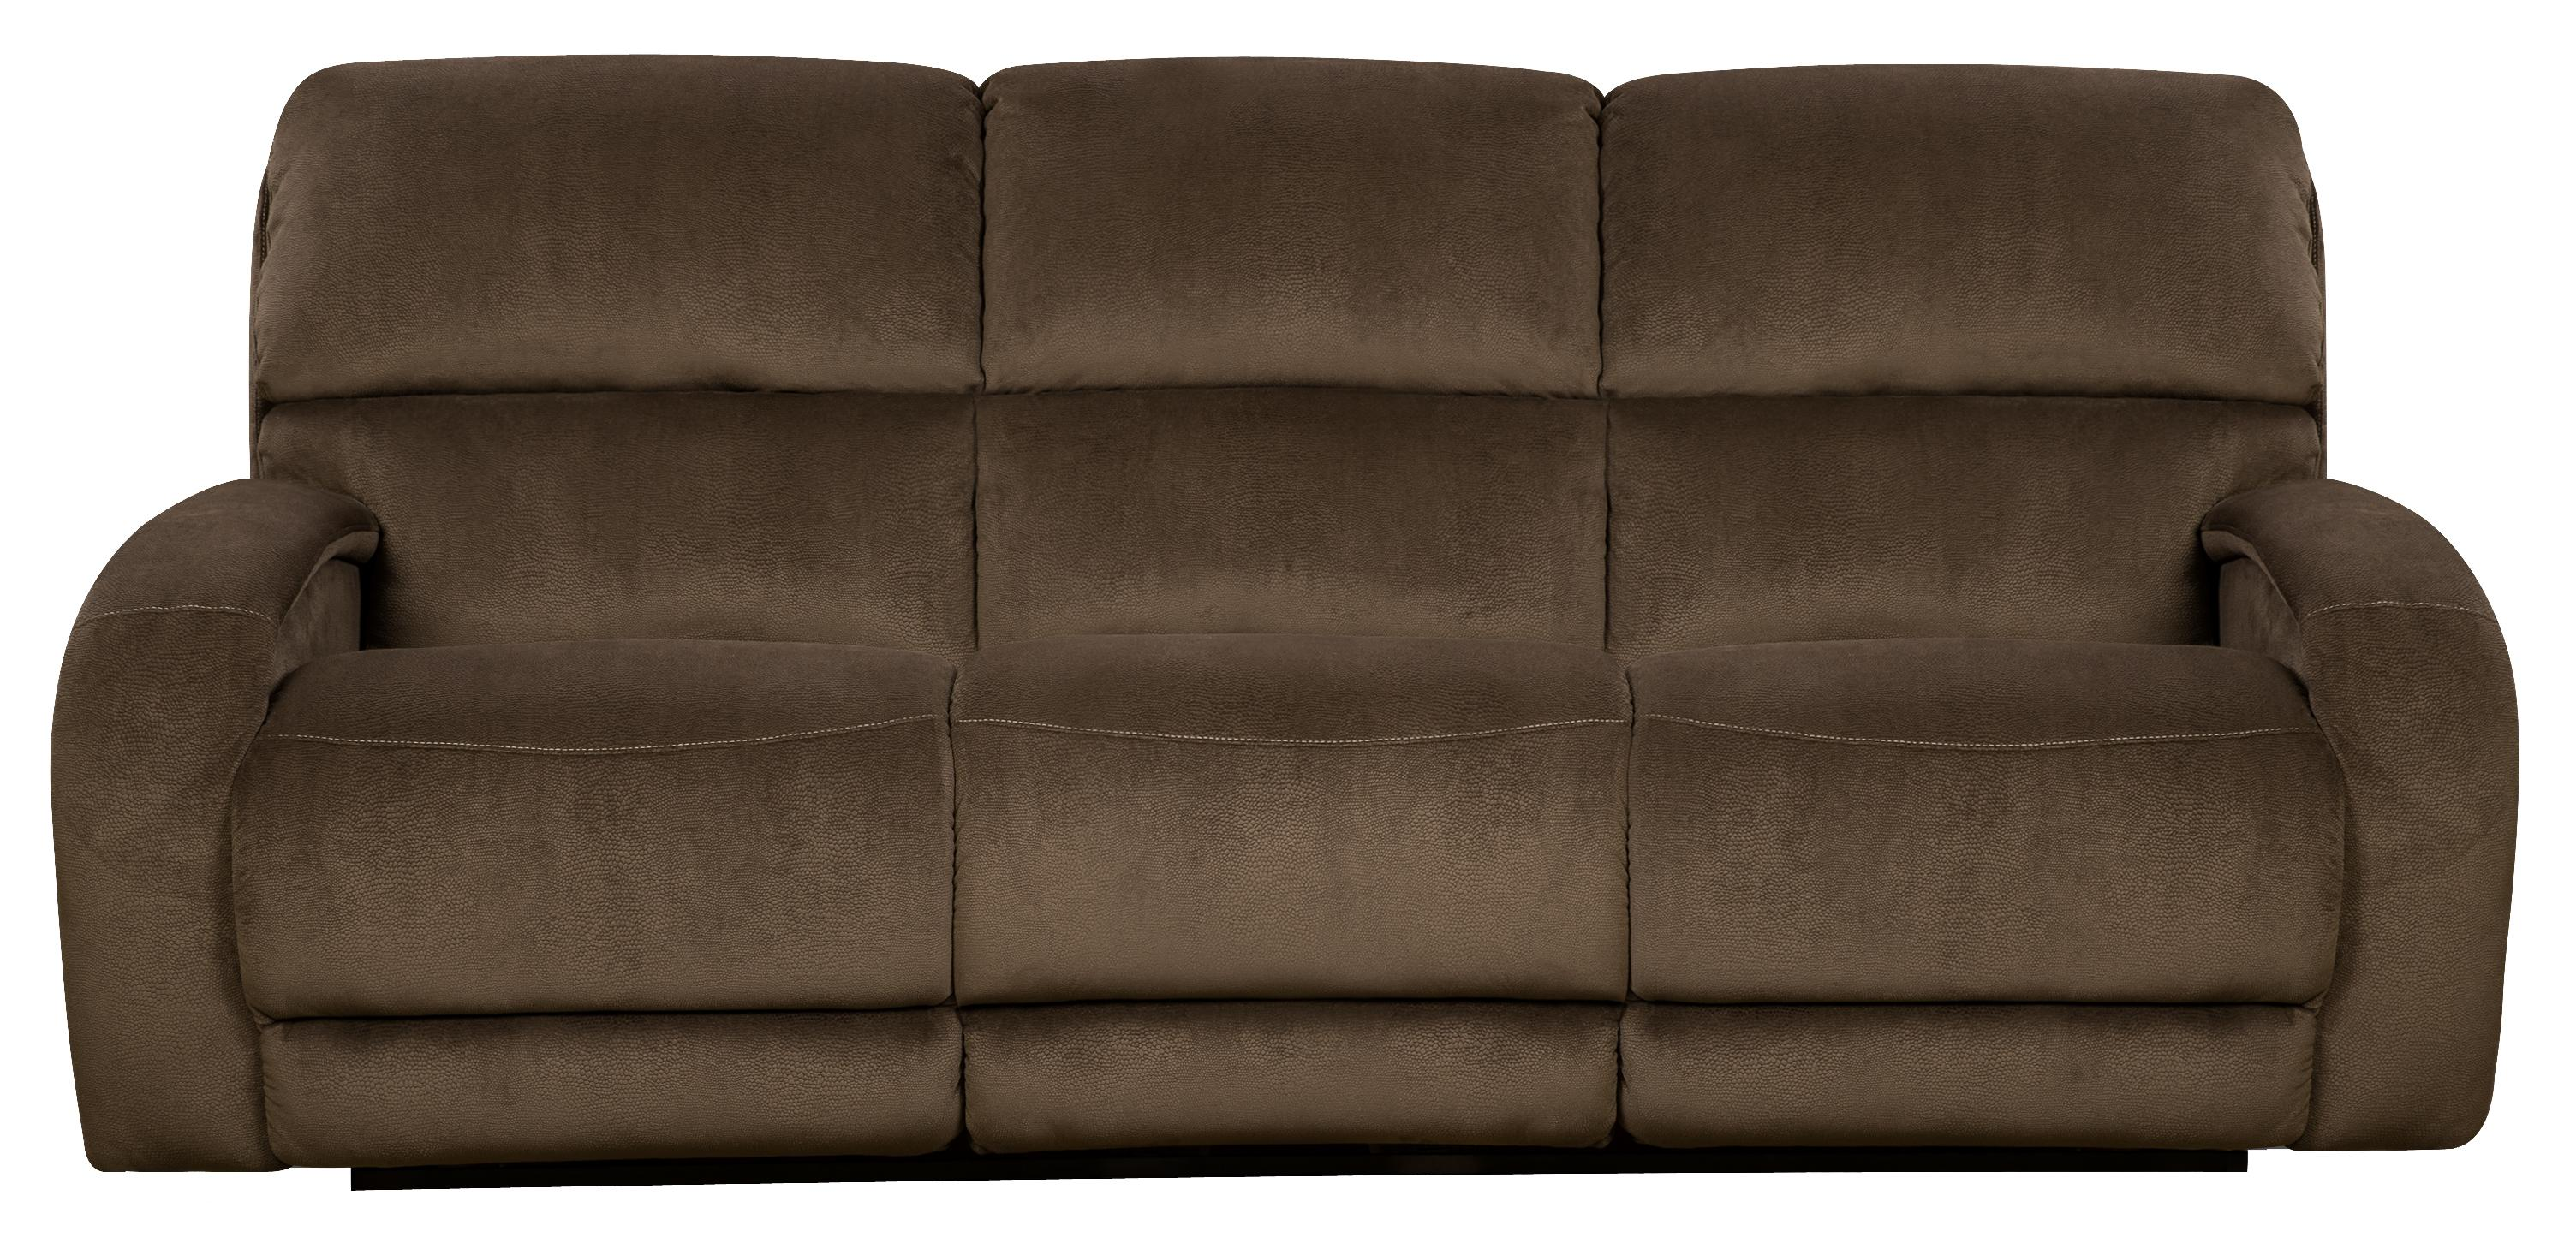 Southern Motion Fandango 884 Reclining Sofa - Item Number: 884-31